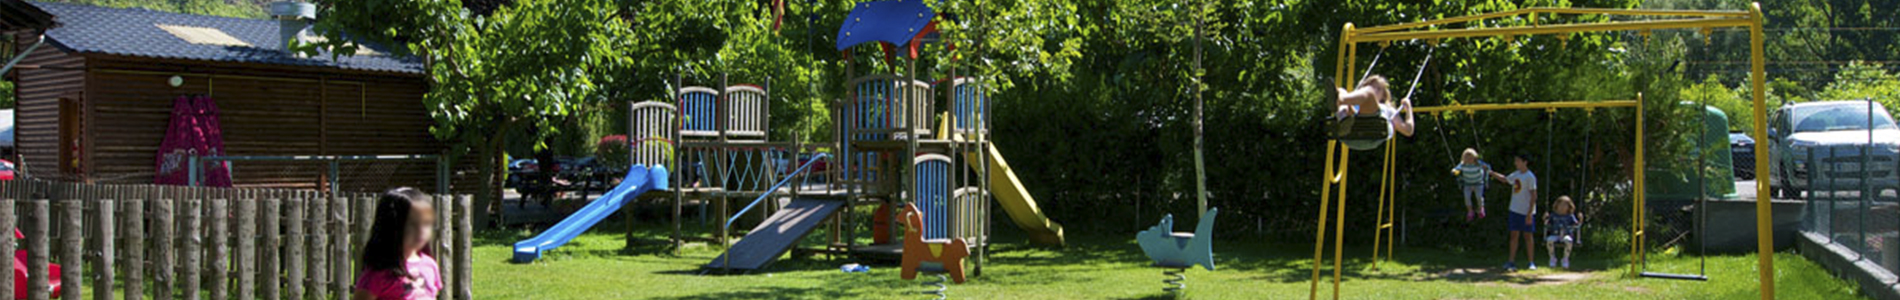 featured-parque-infantil